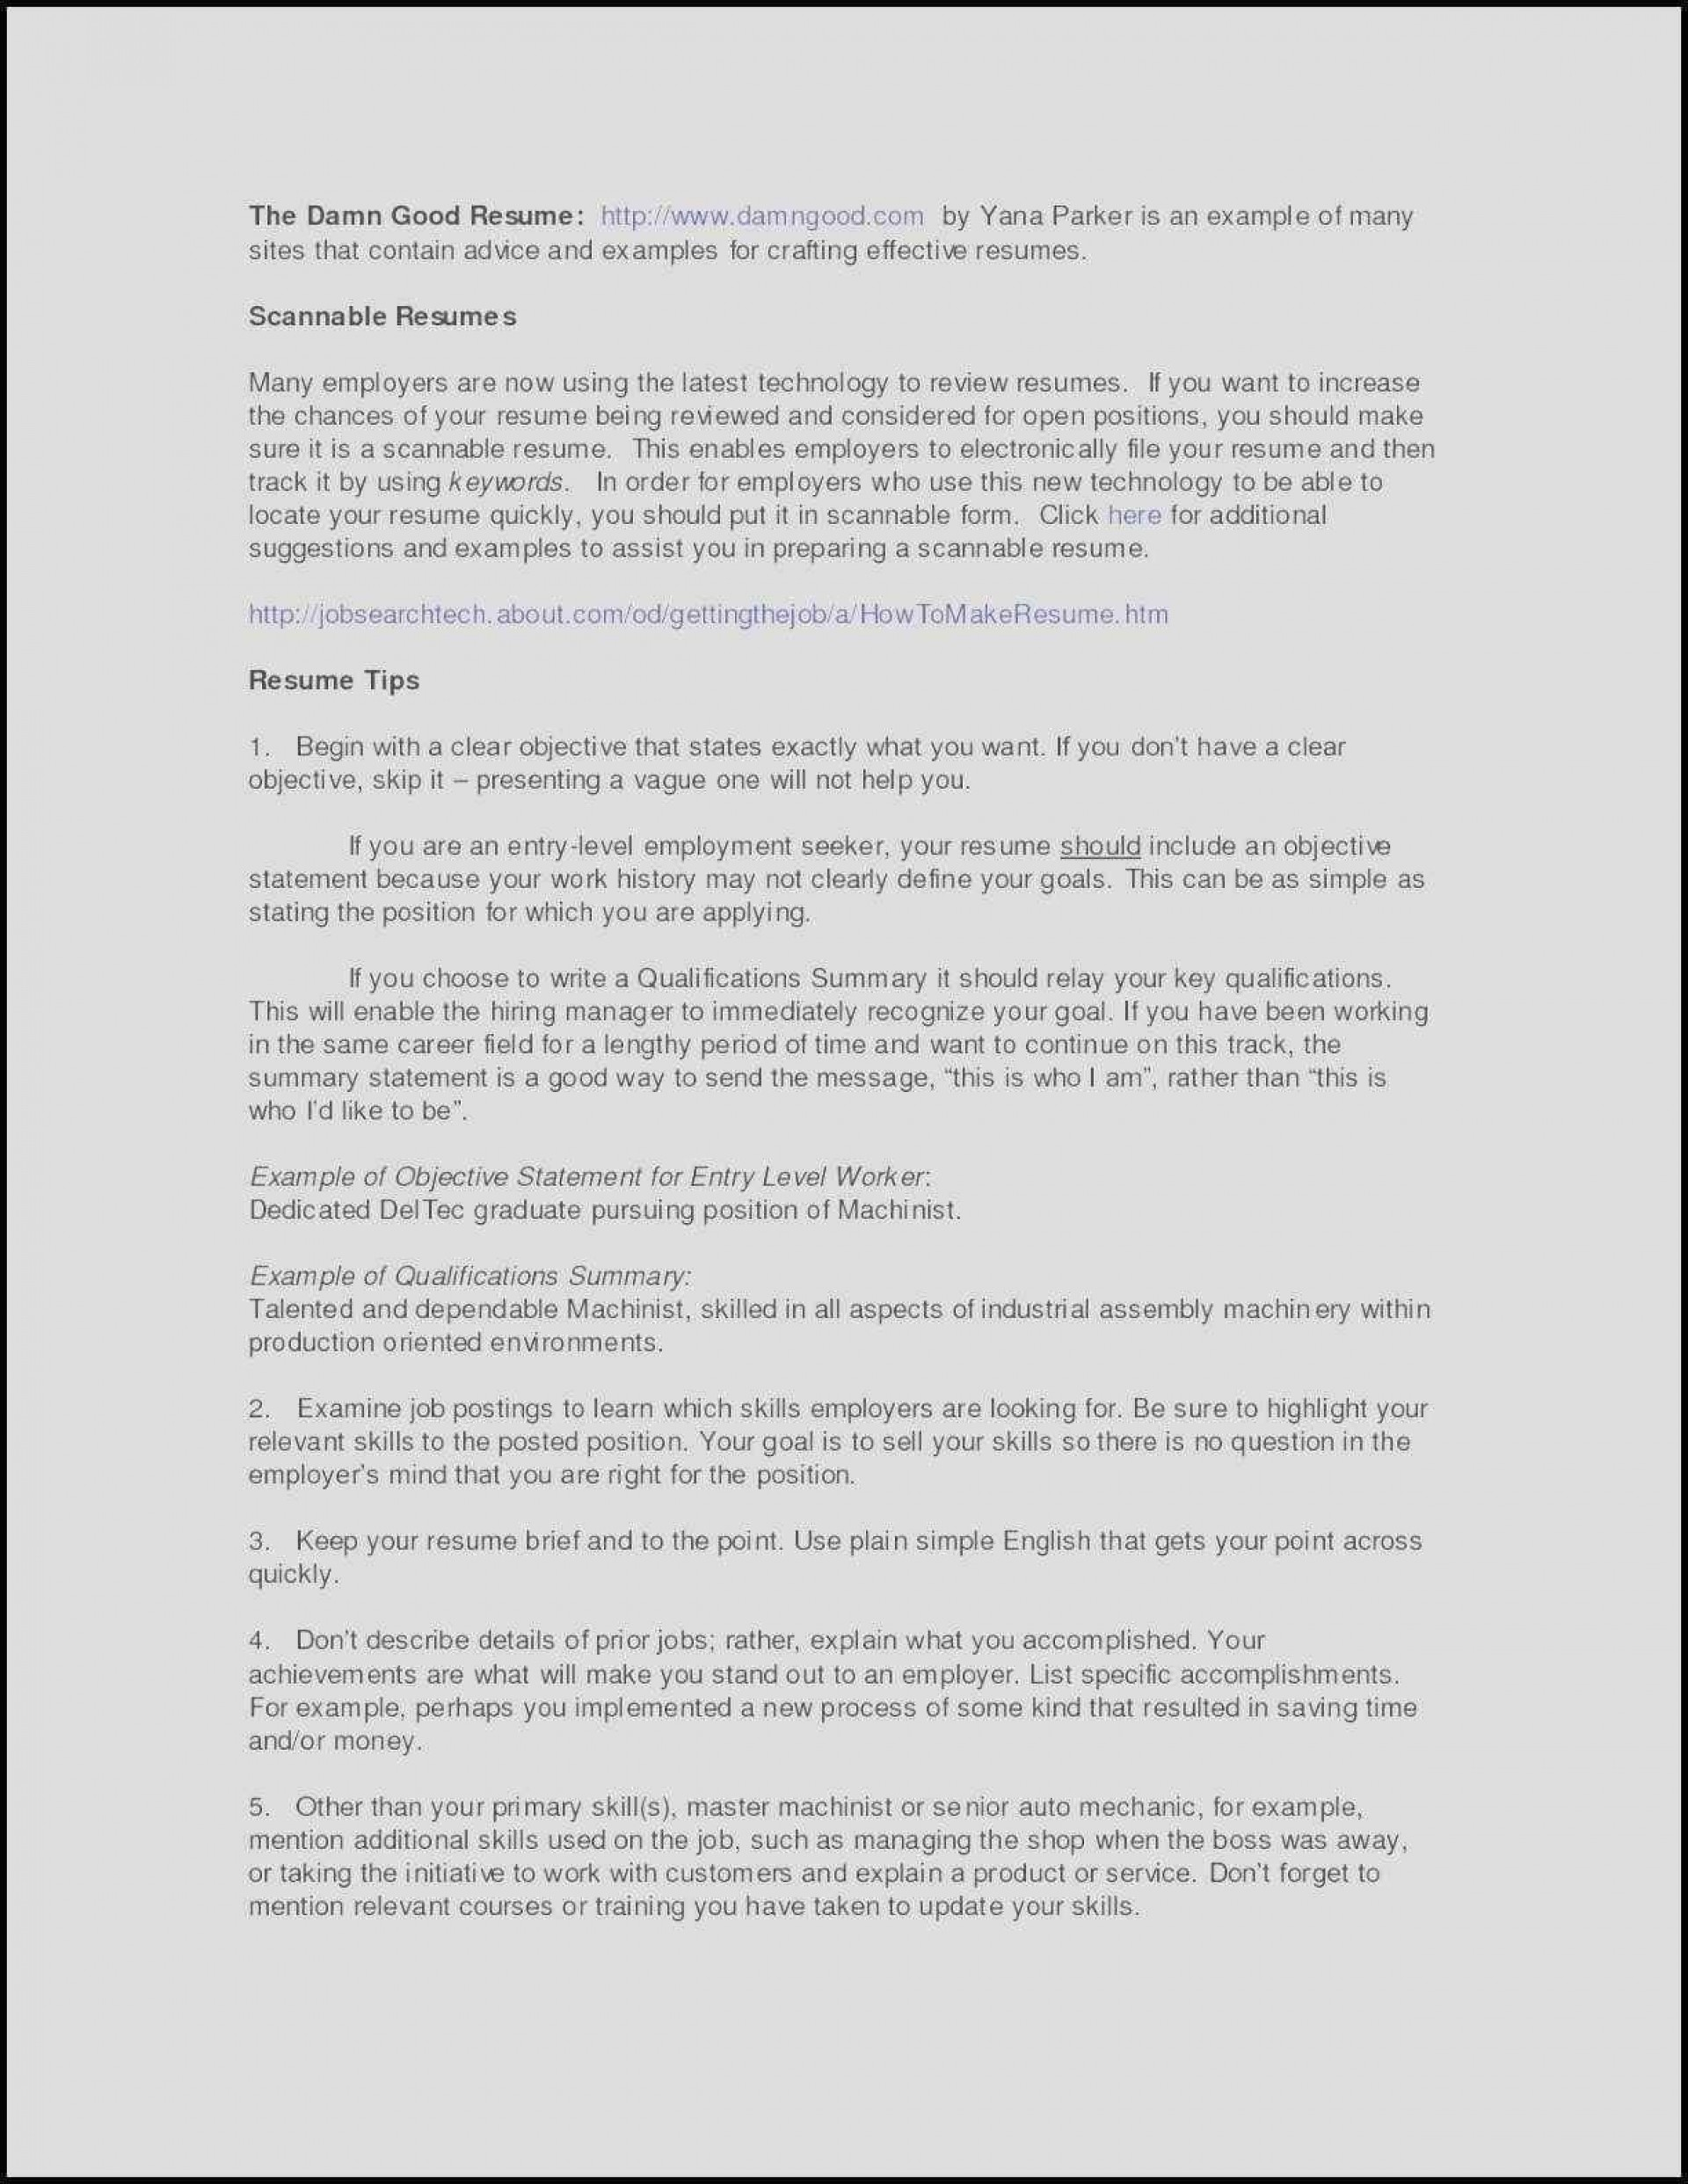 008 Resume Sample Qualification Summary Valid Ideas Great Of Research Paper Amazing Executive Apa 1920